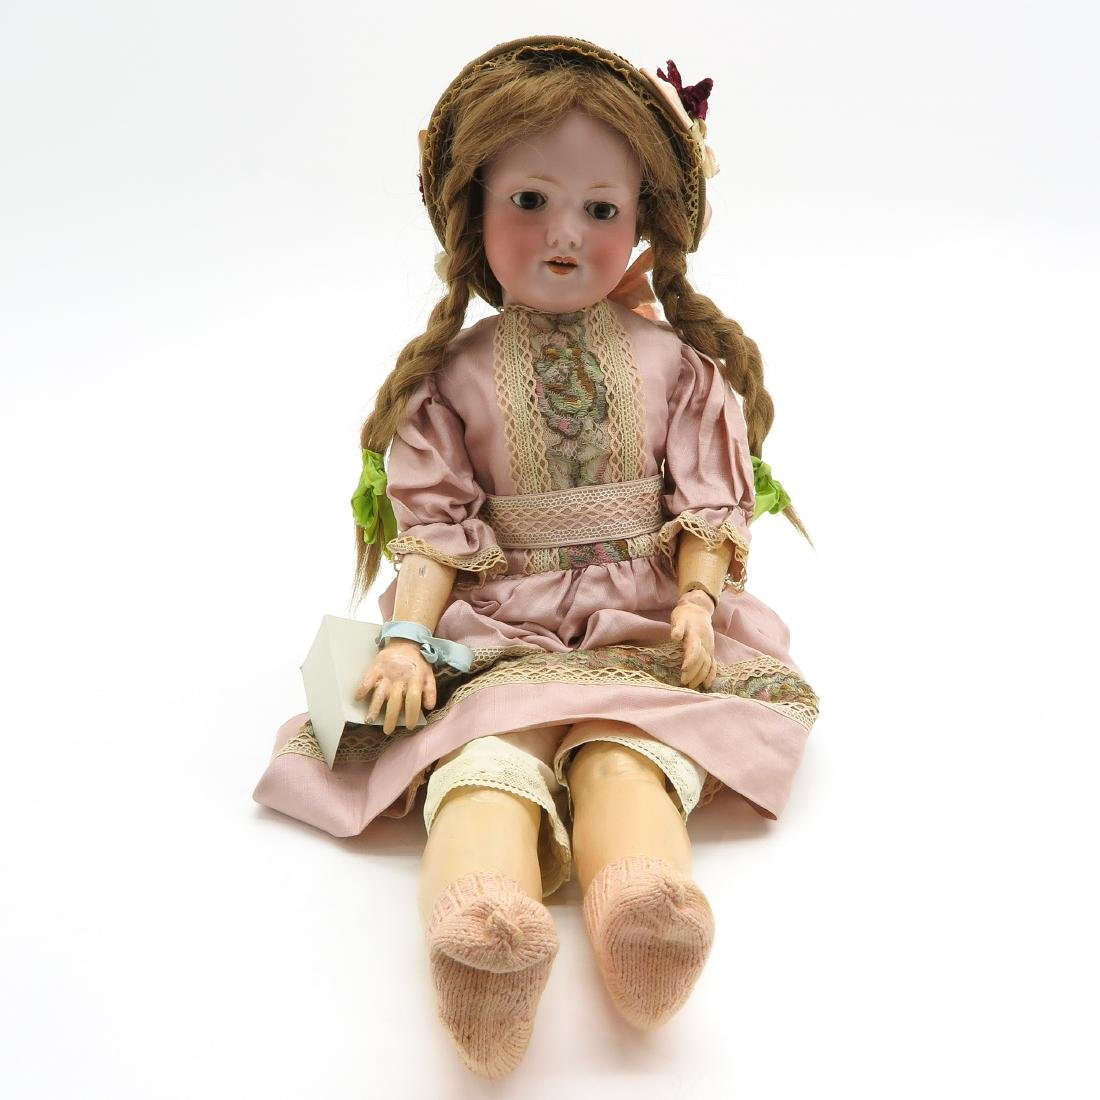 An Antique Armand Marseille Doll